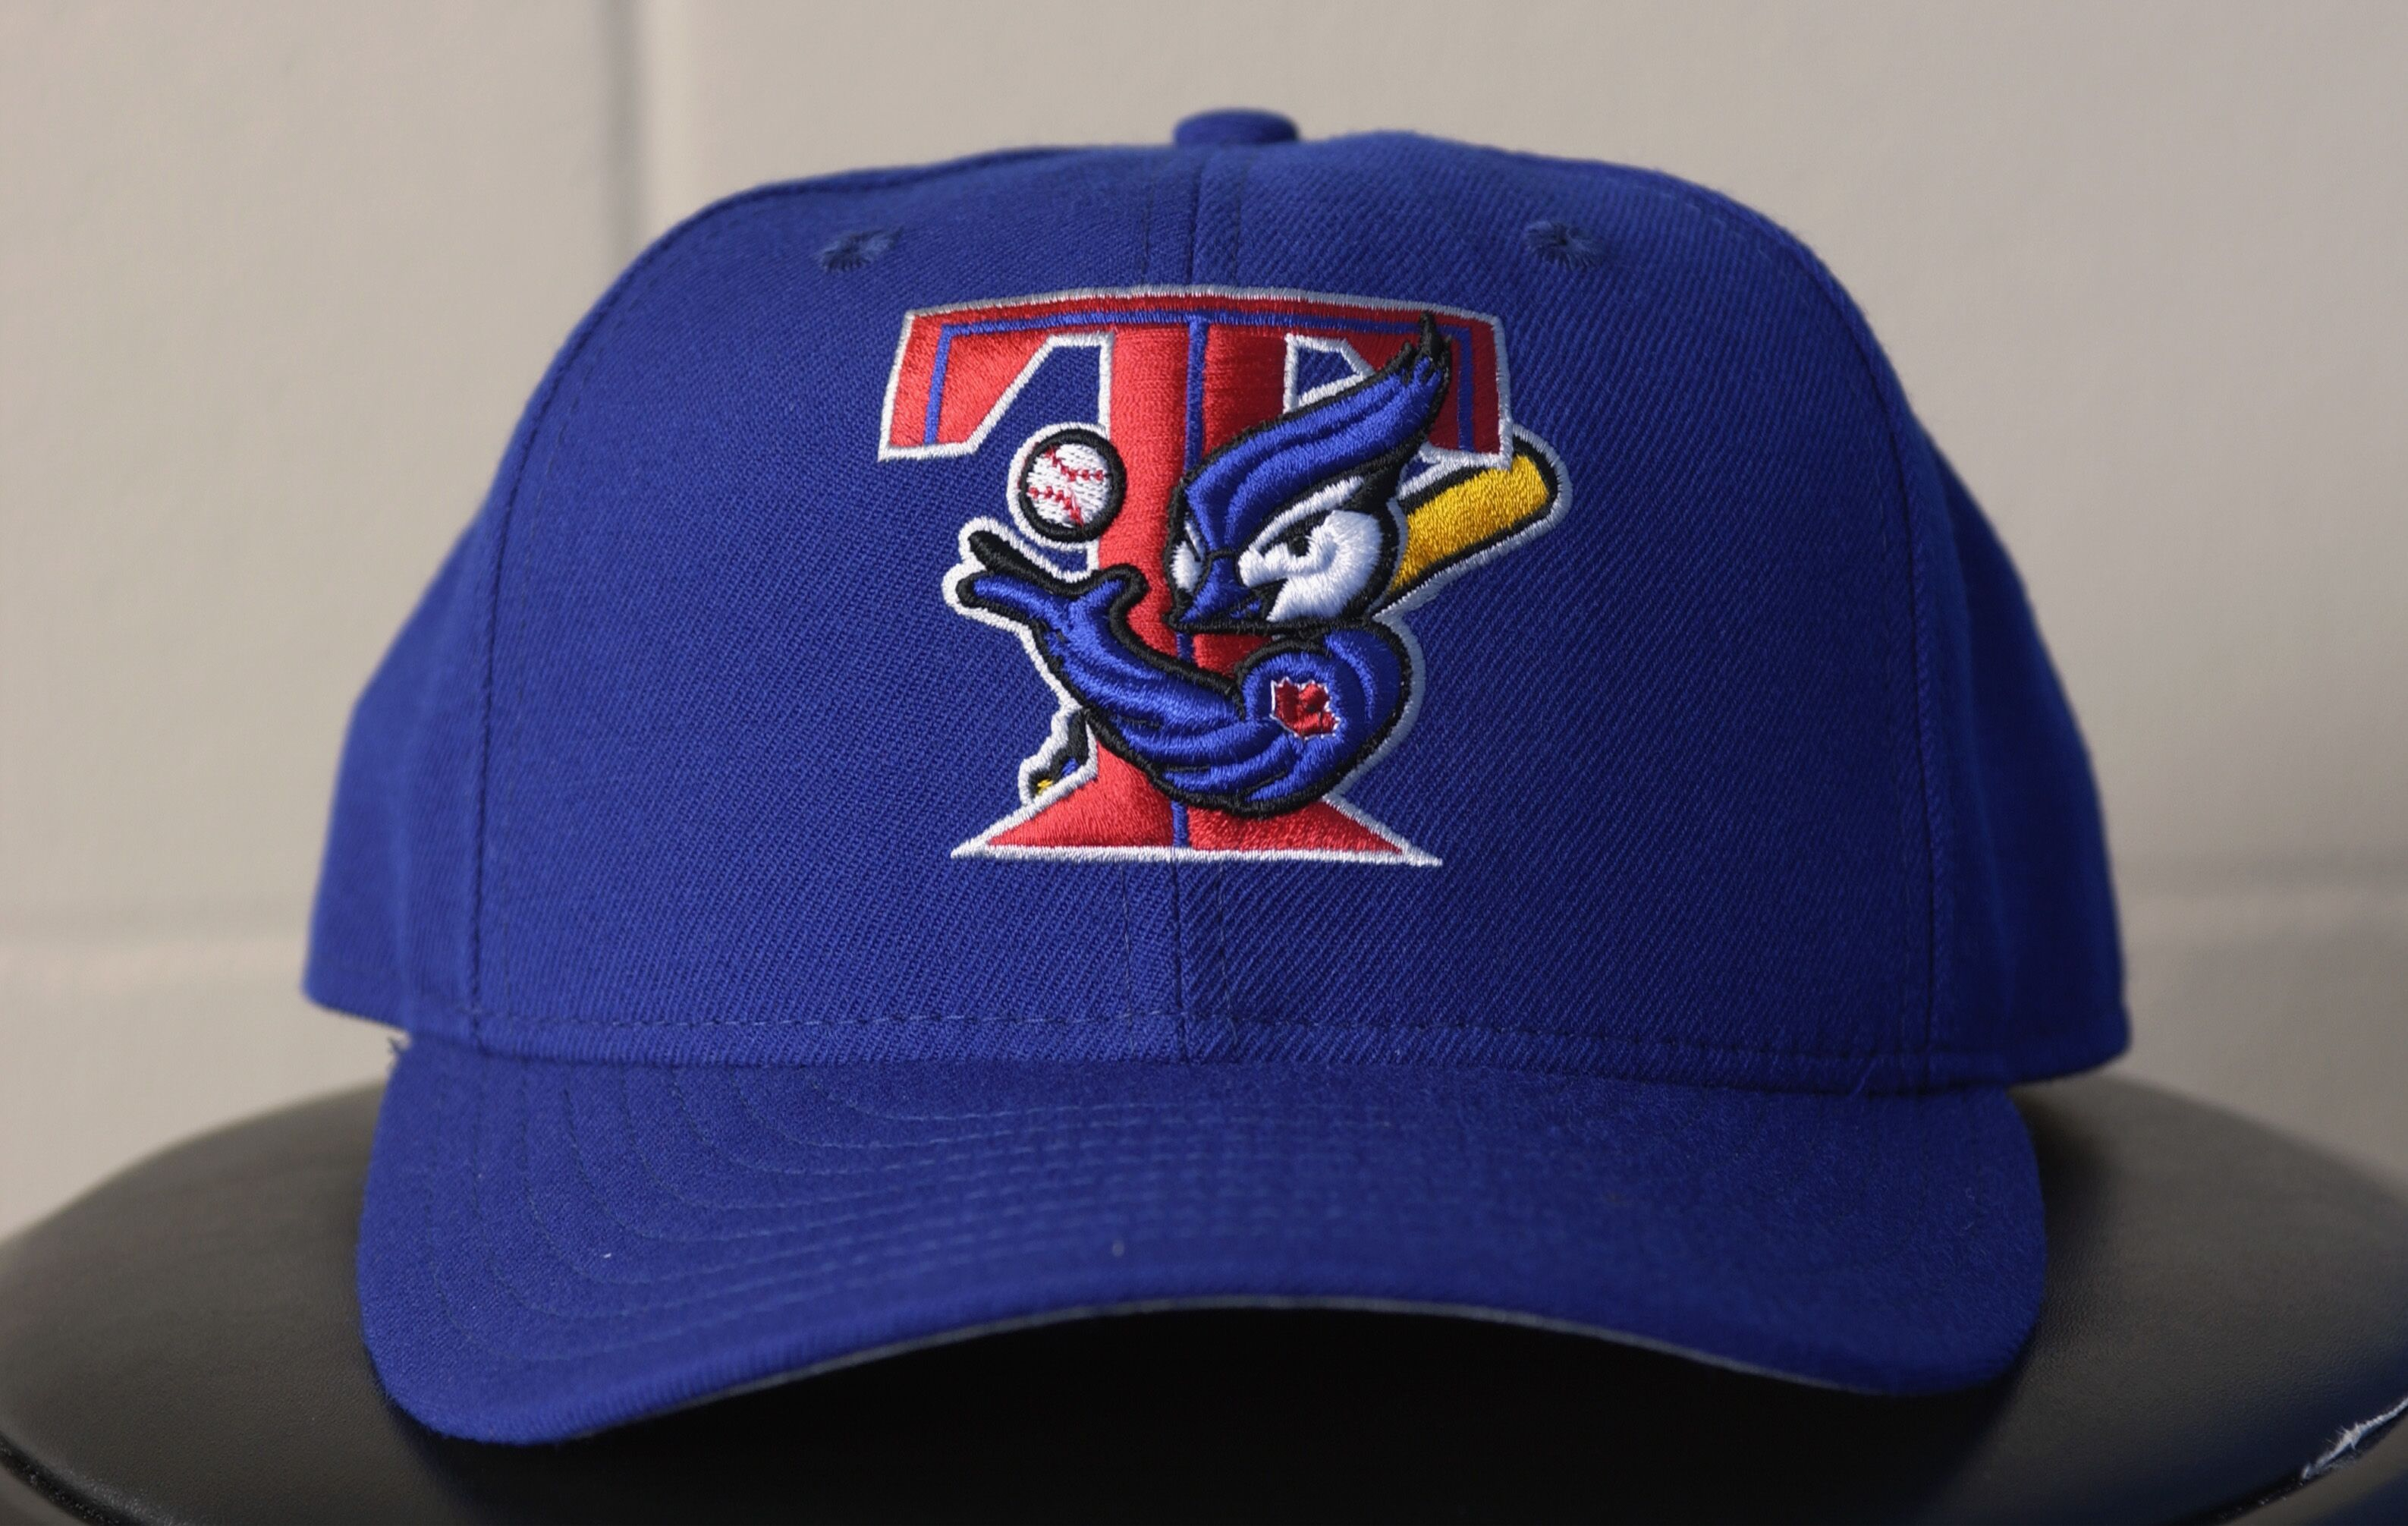 8faffe69 We have reached the point of the offseason where prospect lists abound. We  continue our top 10 prospects for every team with the Toronto Blue Jays!